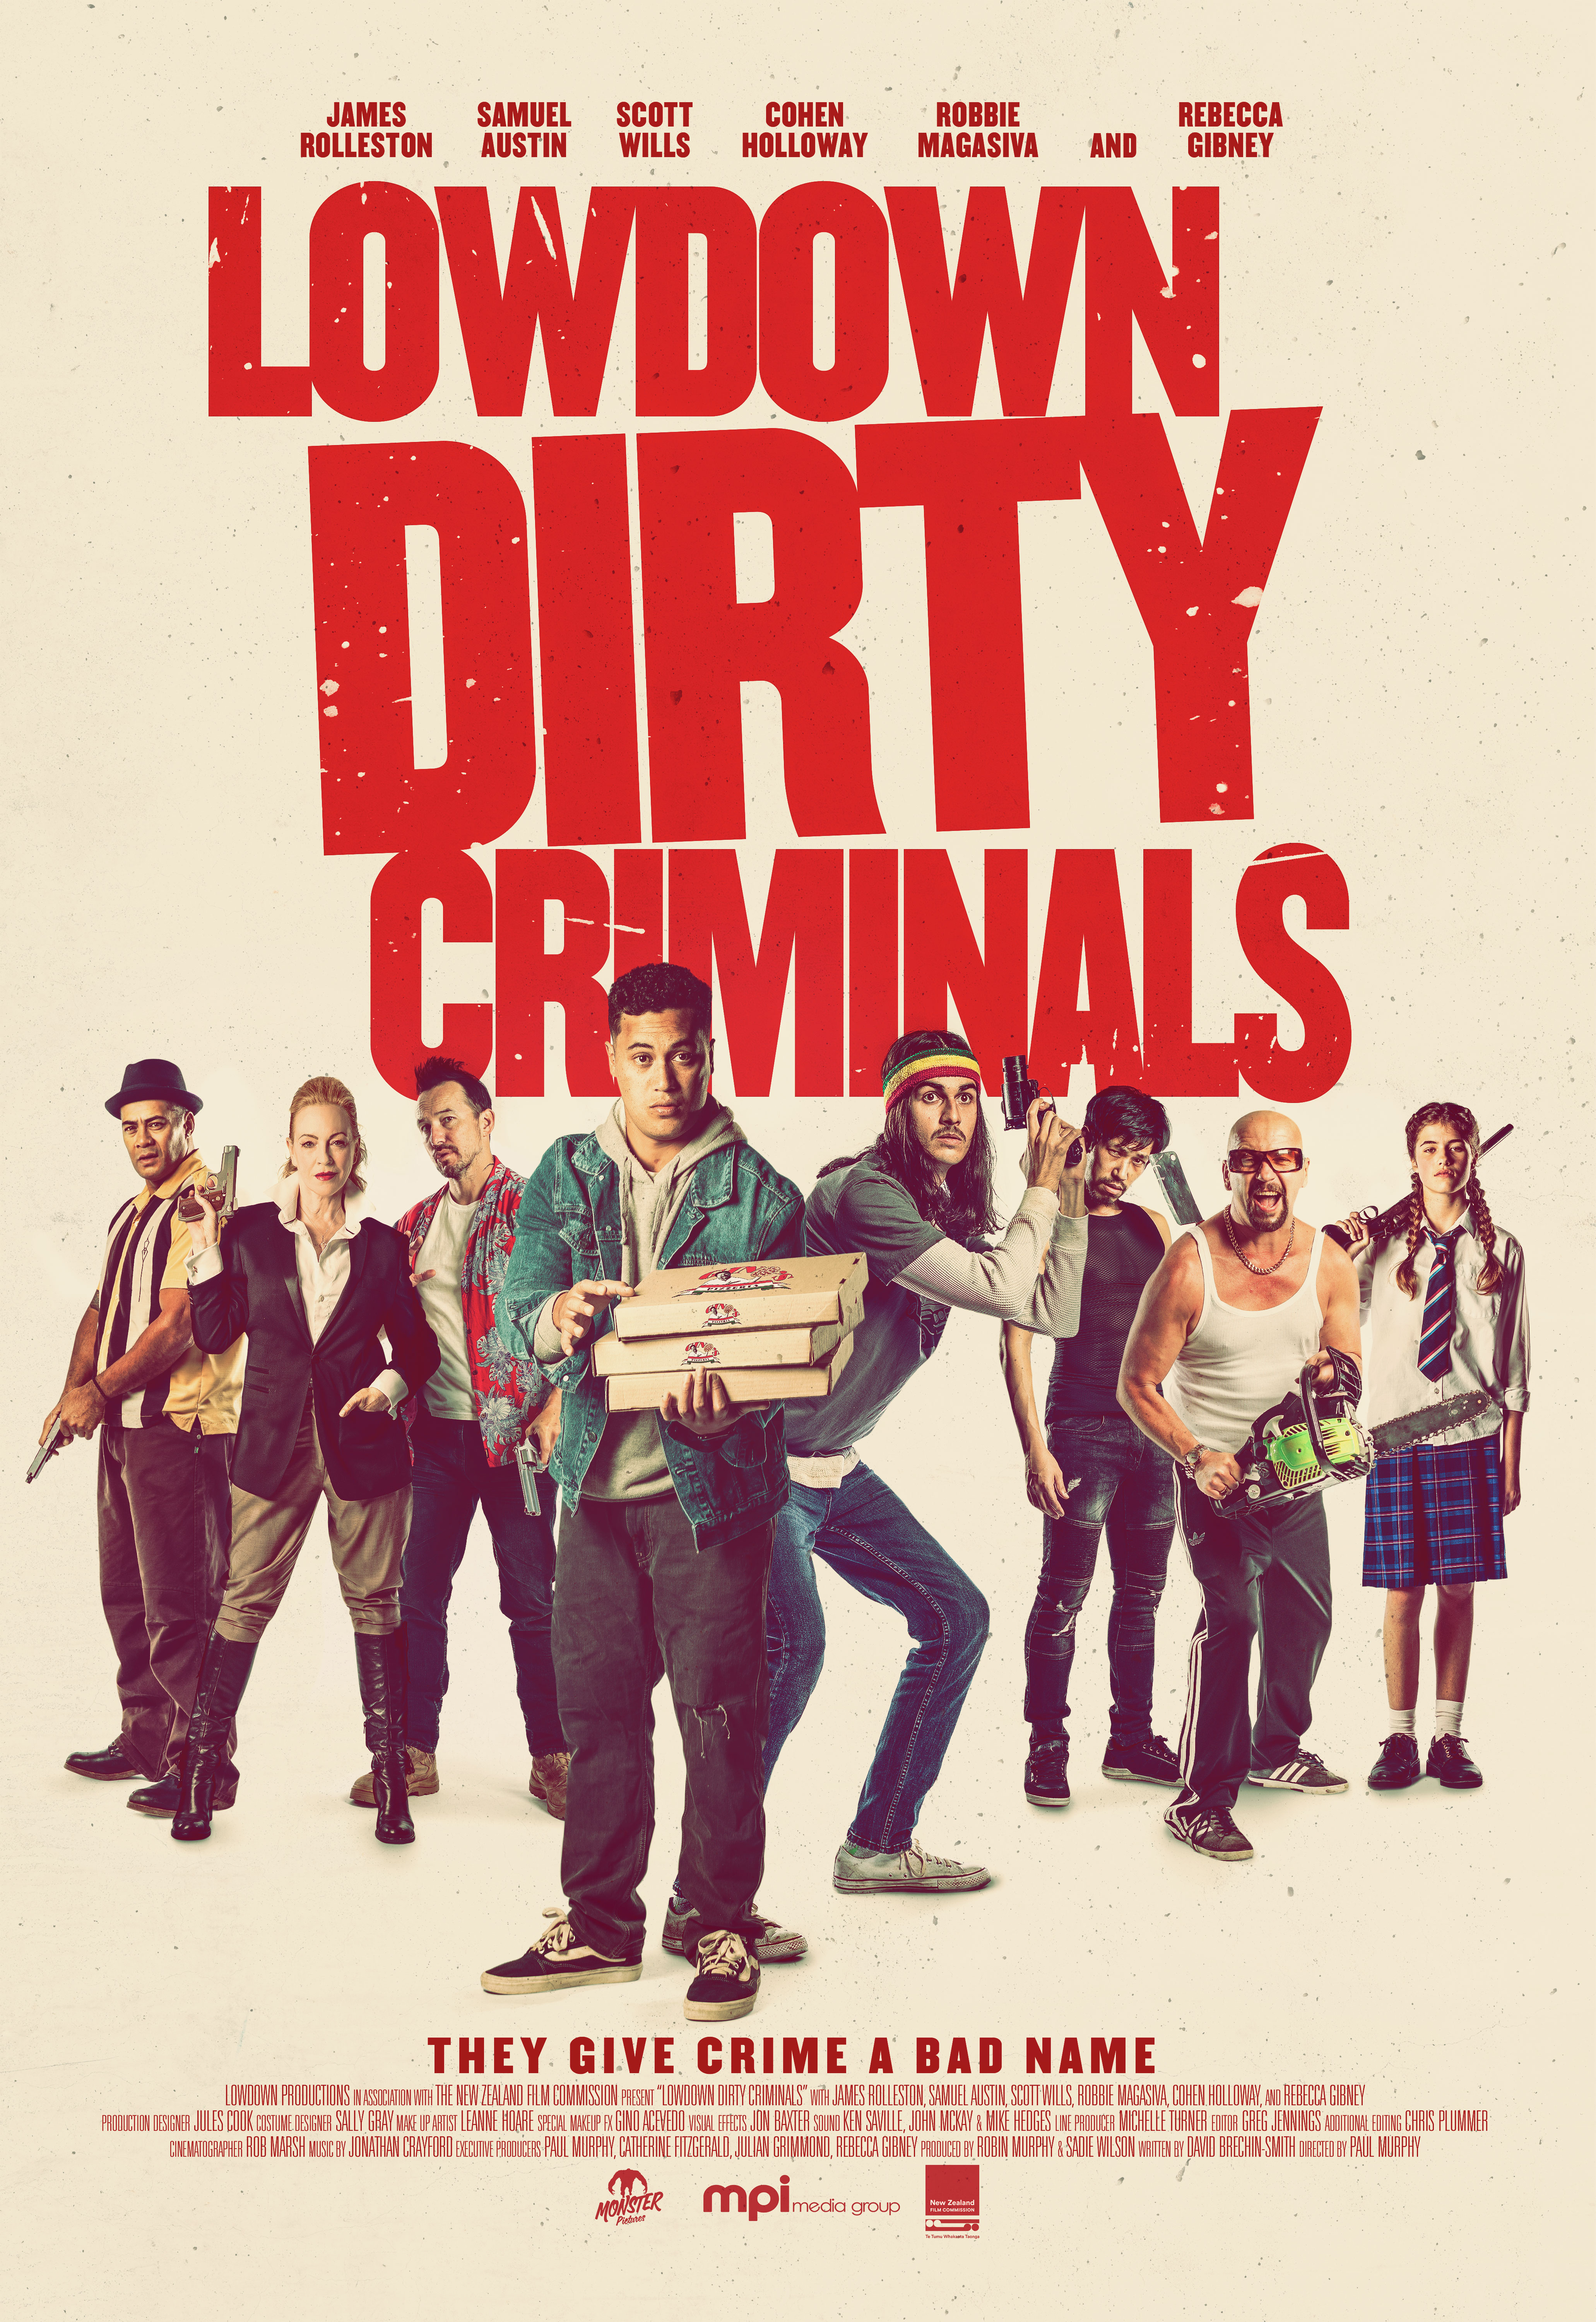 Lowdown Dirty Criminals - Poster